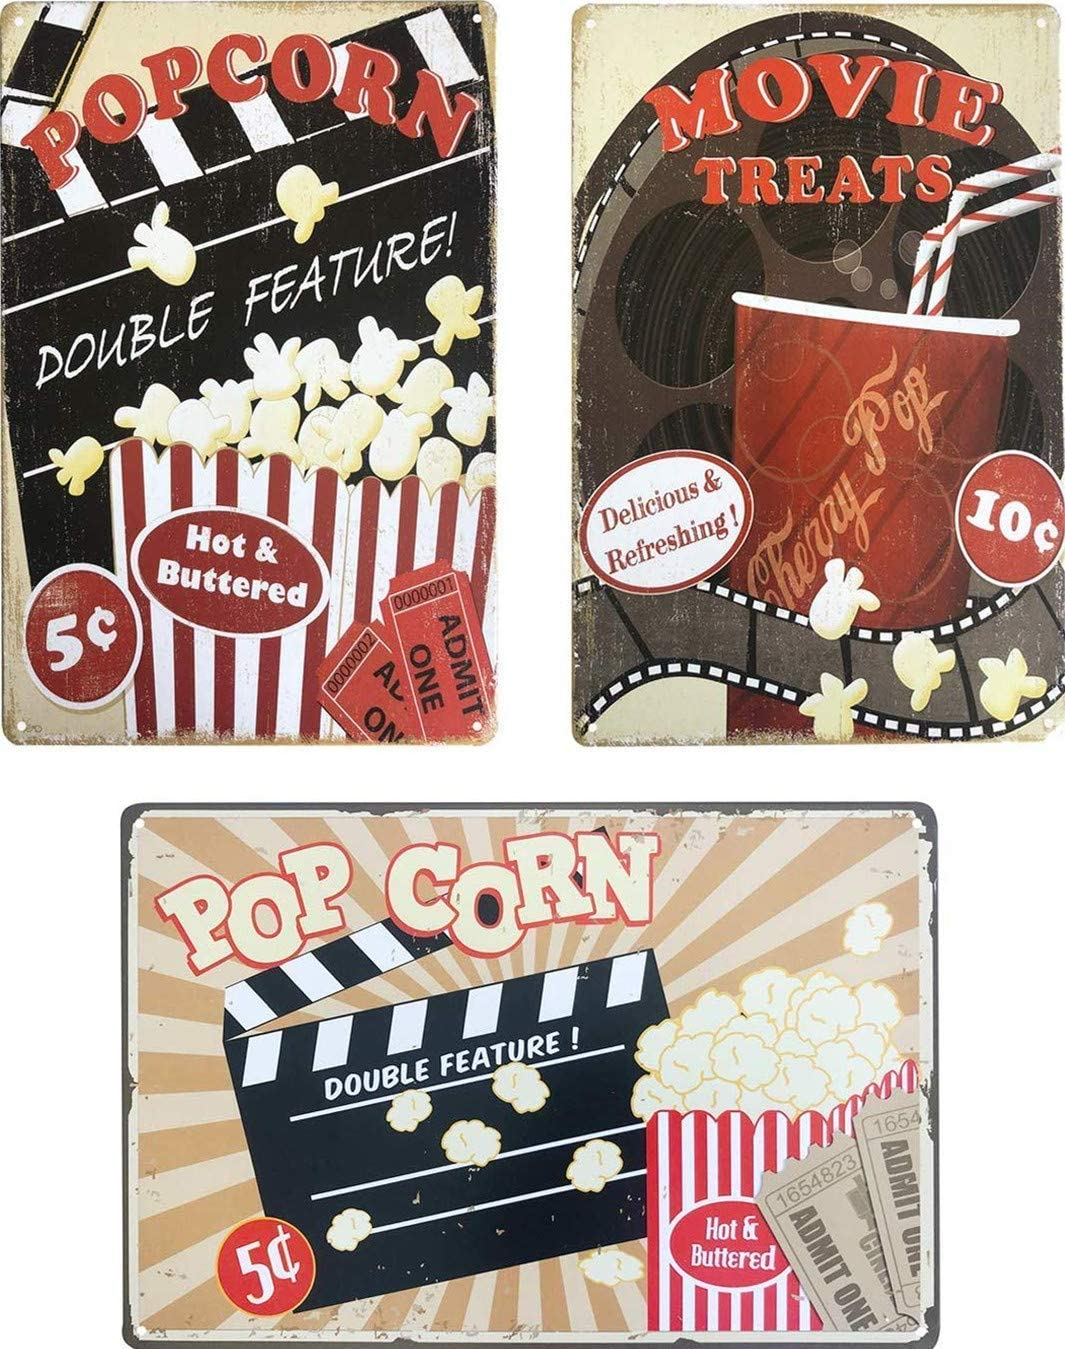 "UNIQUELOVER Movie Treats Popcorn Movie Room Decor Accessories Vintage Metal Tin Sign Funny Film Decor for Home Wall Art Plaque Decor 12"" x 8""/30 x 20cm(3Pcs Popcorn Tin Signs"